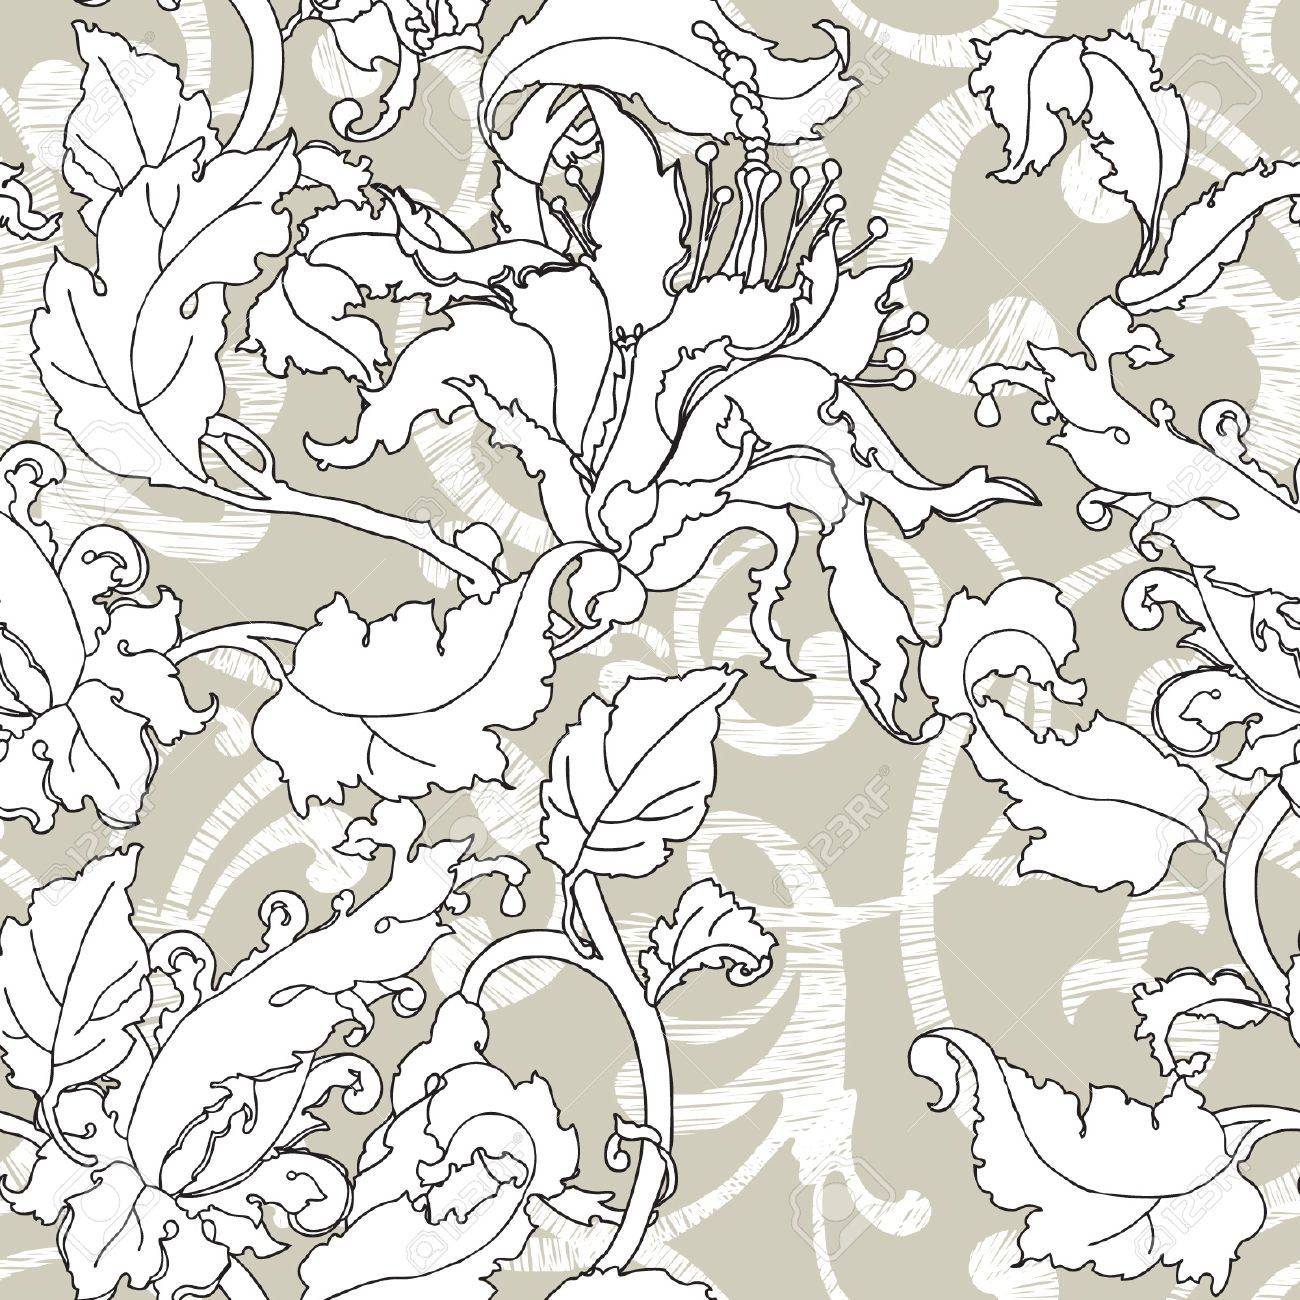 Elegance Seamless pattern with flowers, vector floral illustration in vintage style Stock Vector - 19397621